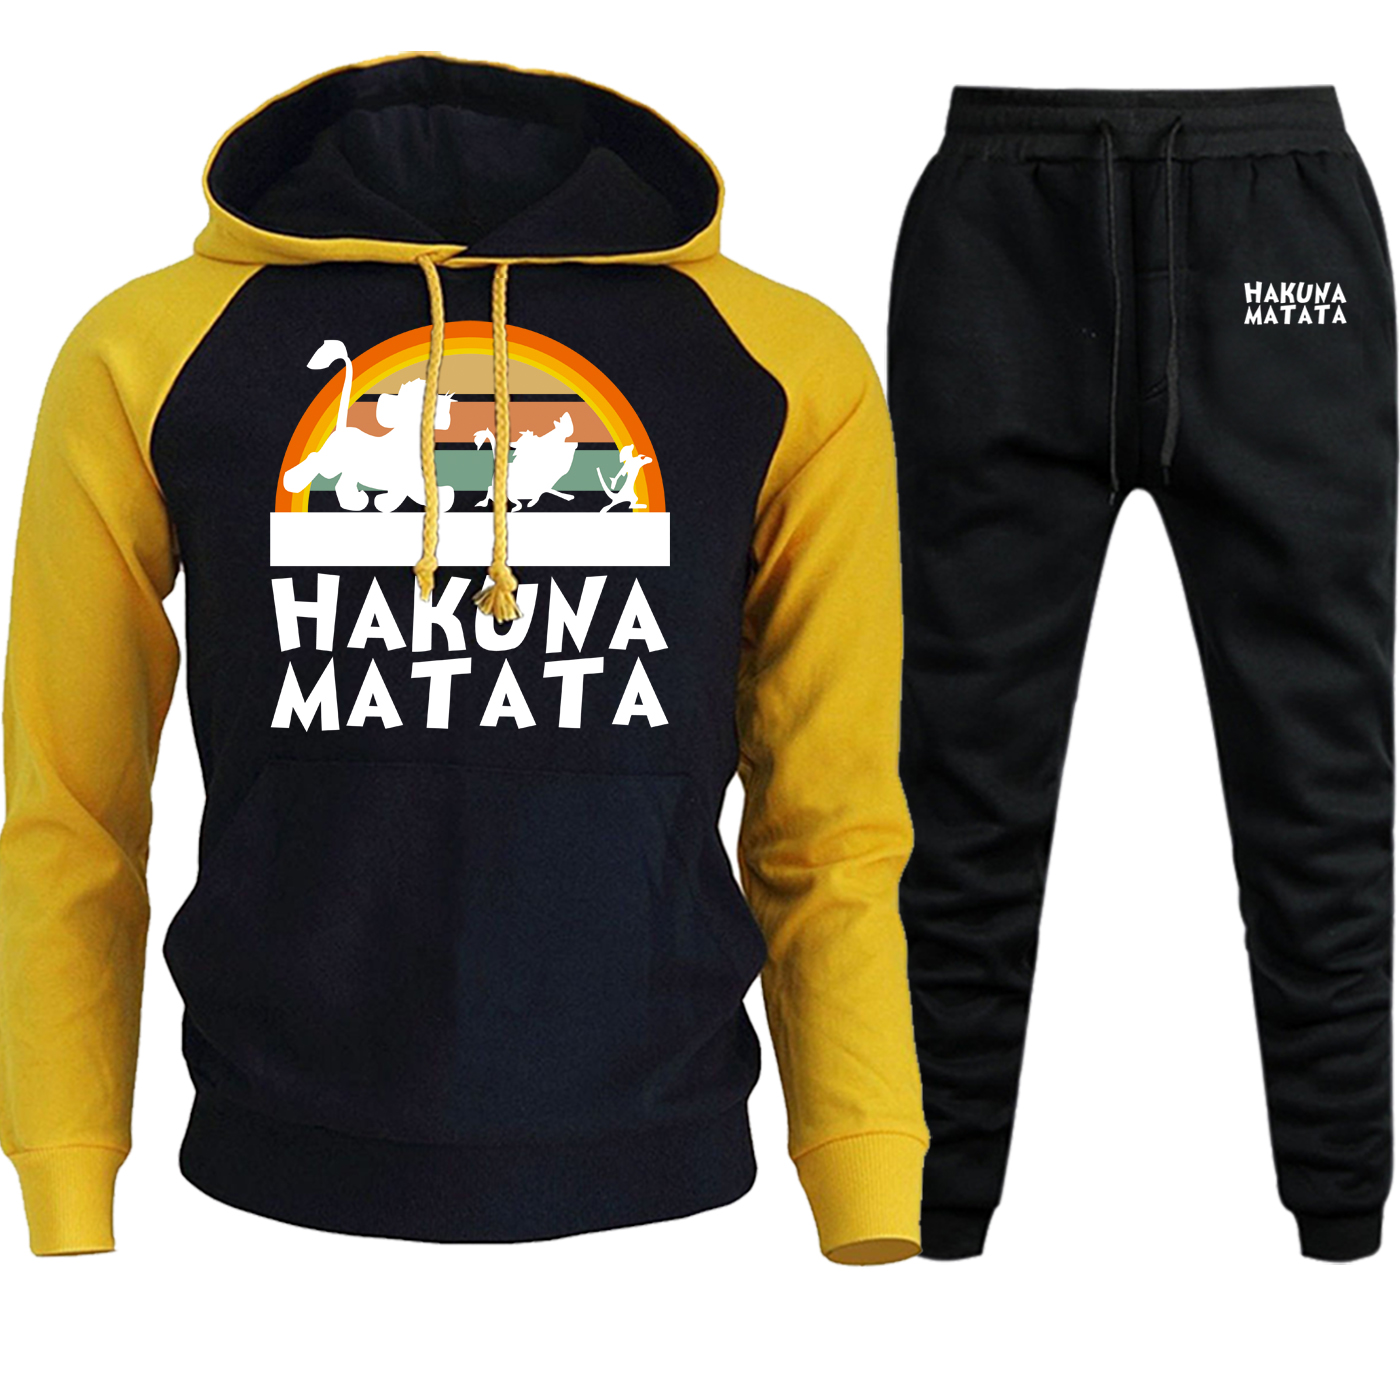 The Lion King Mens Hooded Raglan Autumn Winter Hakuna Matata Cartoon Printed Sweatshirt Suit Pullover Hoodie+Pants 2 Piece Set